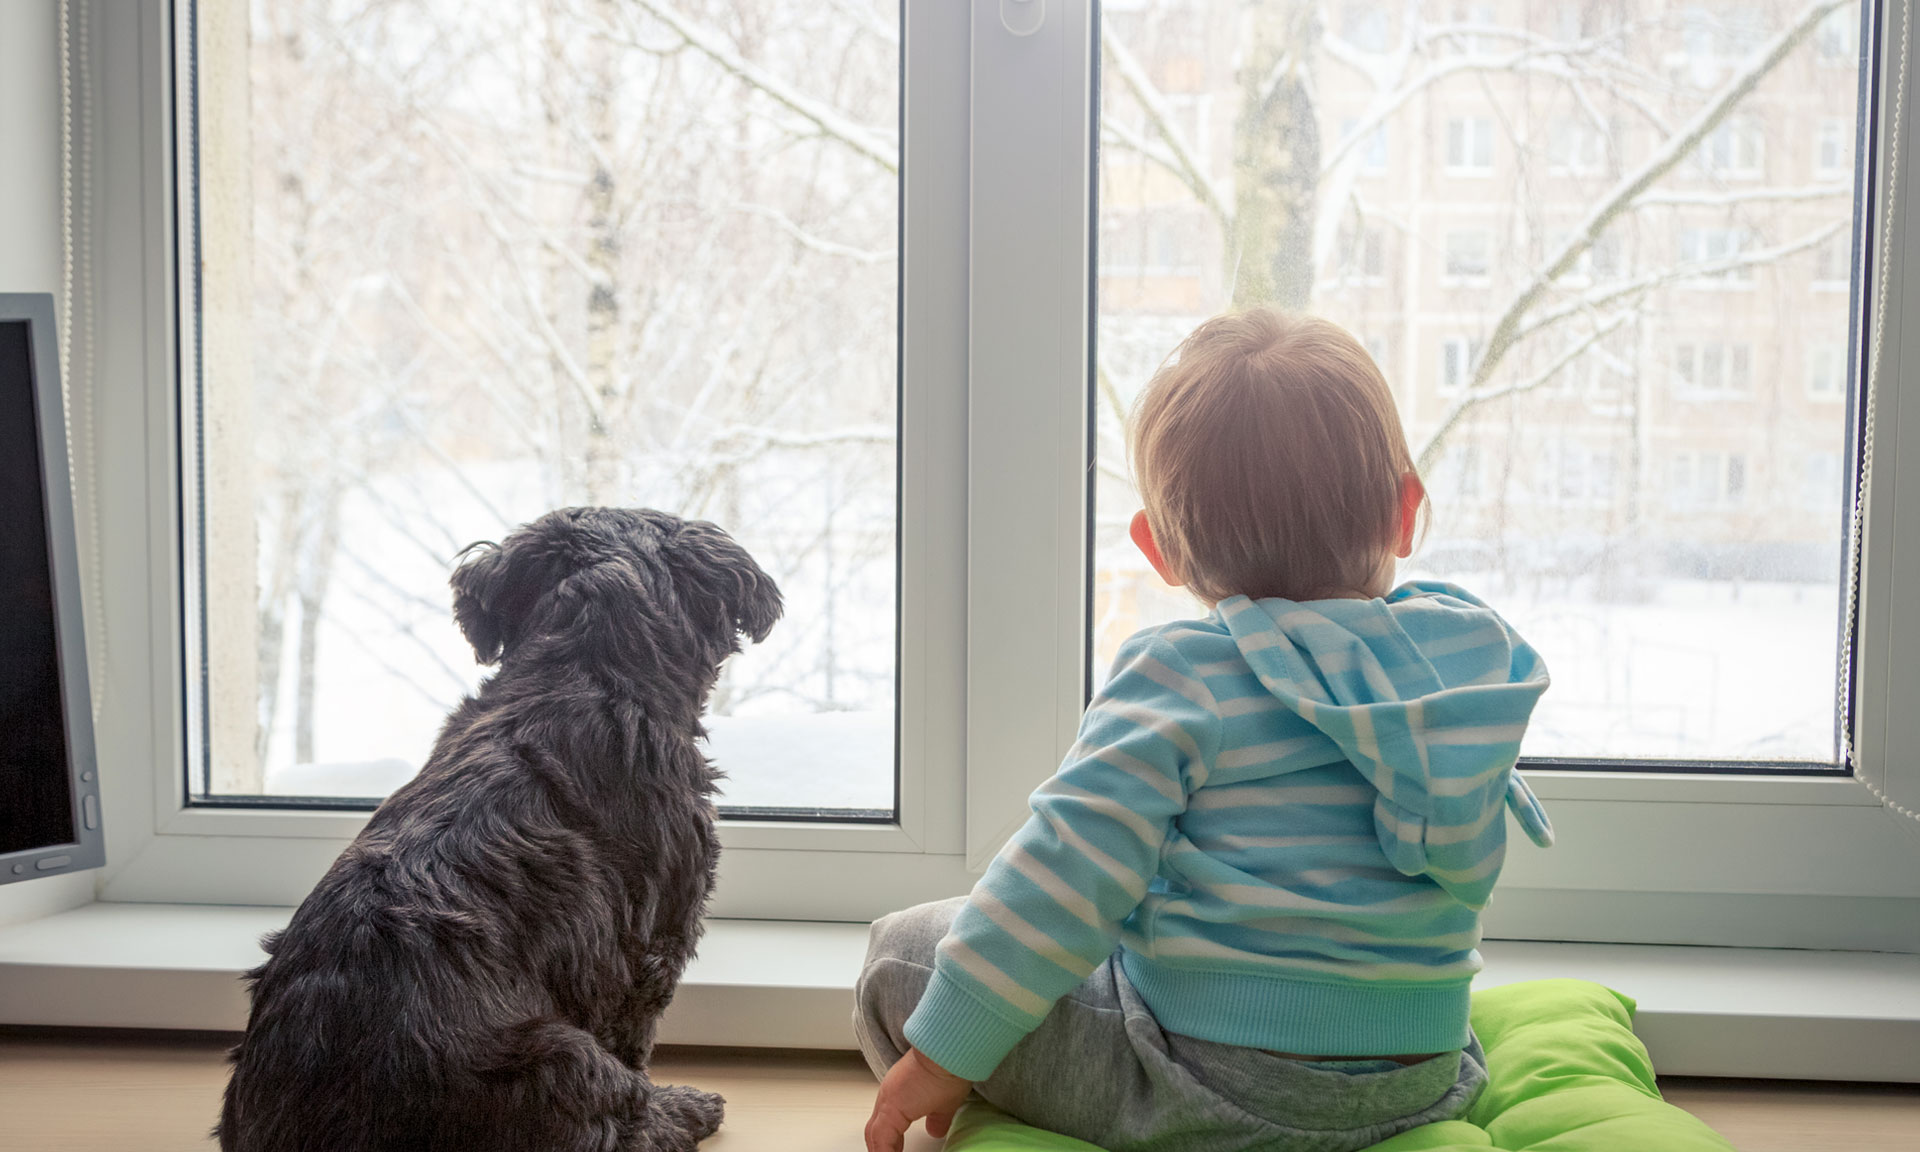 Child and dog looking out of double glazed windows